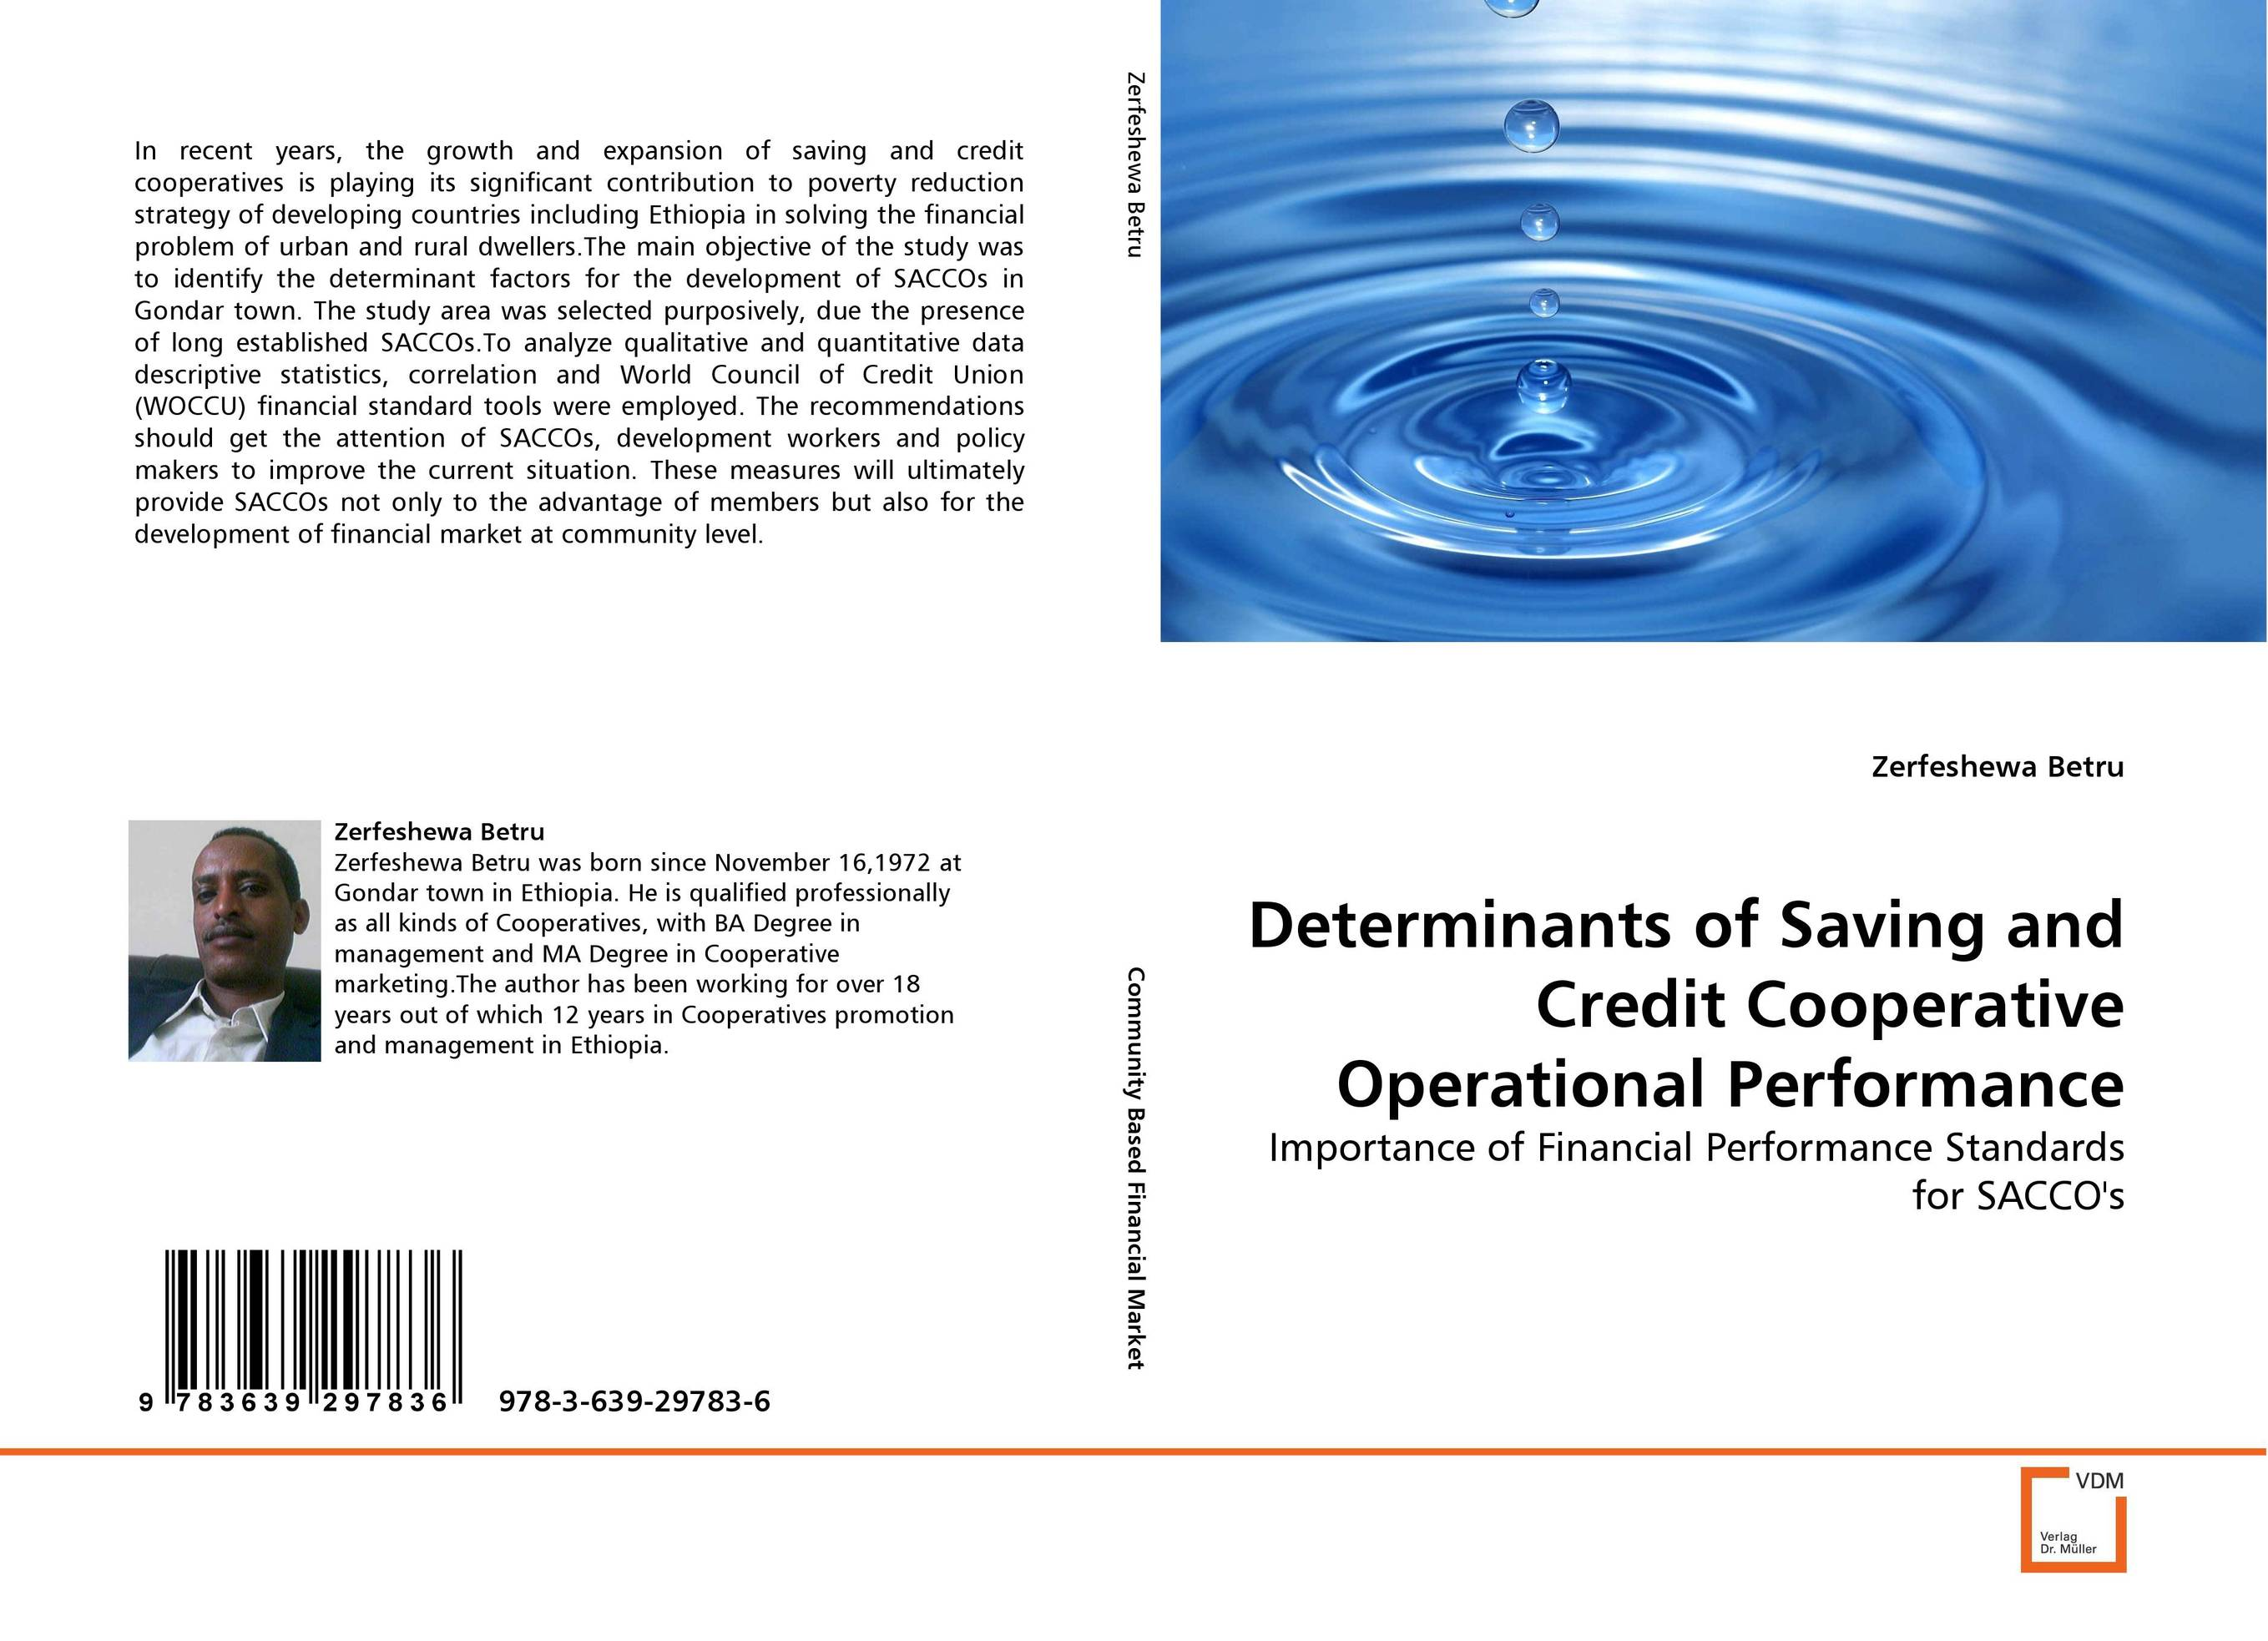 Determinants of Saving and Credit Cooperative Operational Performance